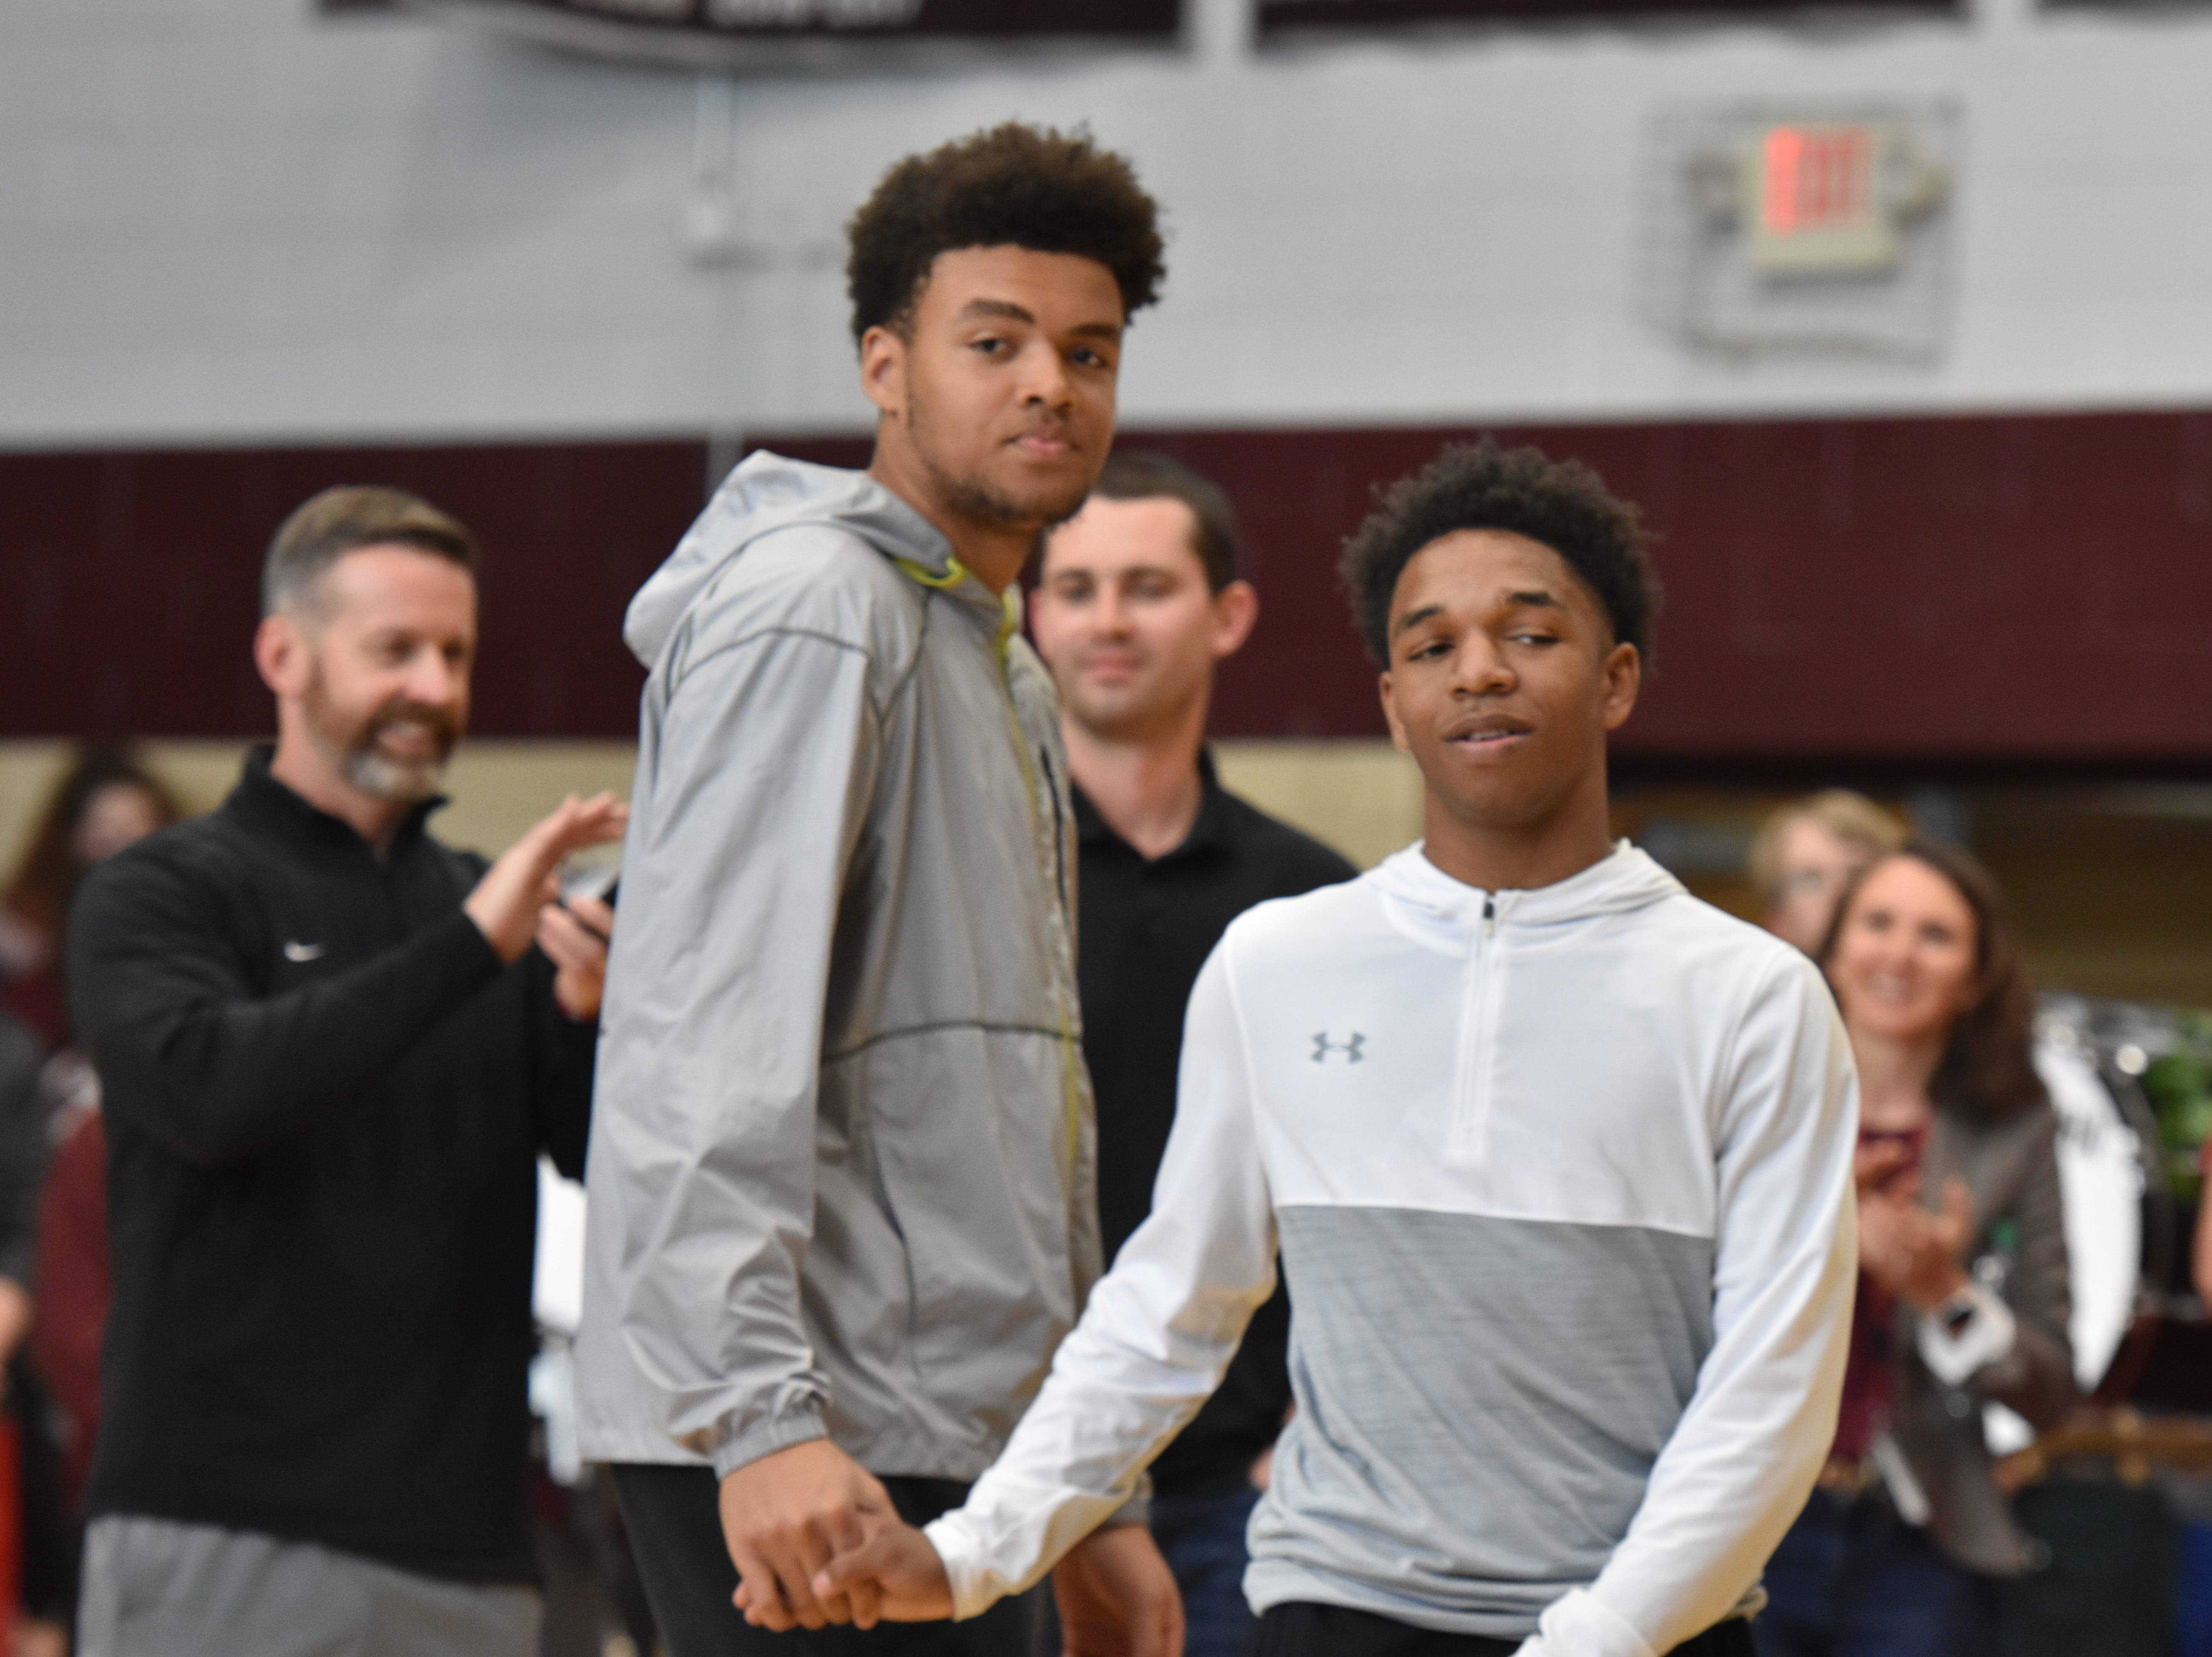 Bearden basketball players were honored at a pep rally Friday, March 29, to celebrate the school's basketball state championship.